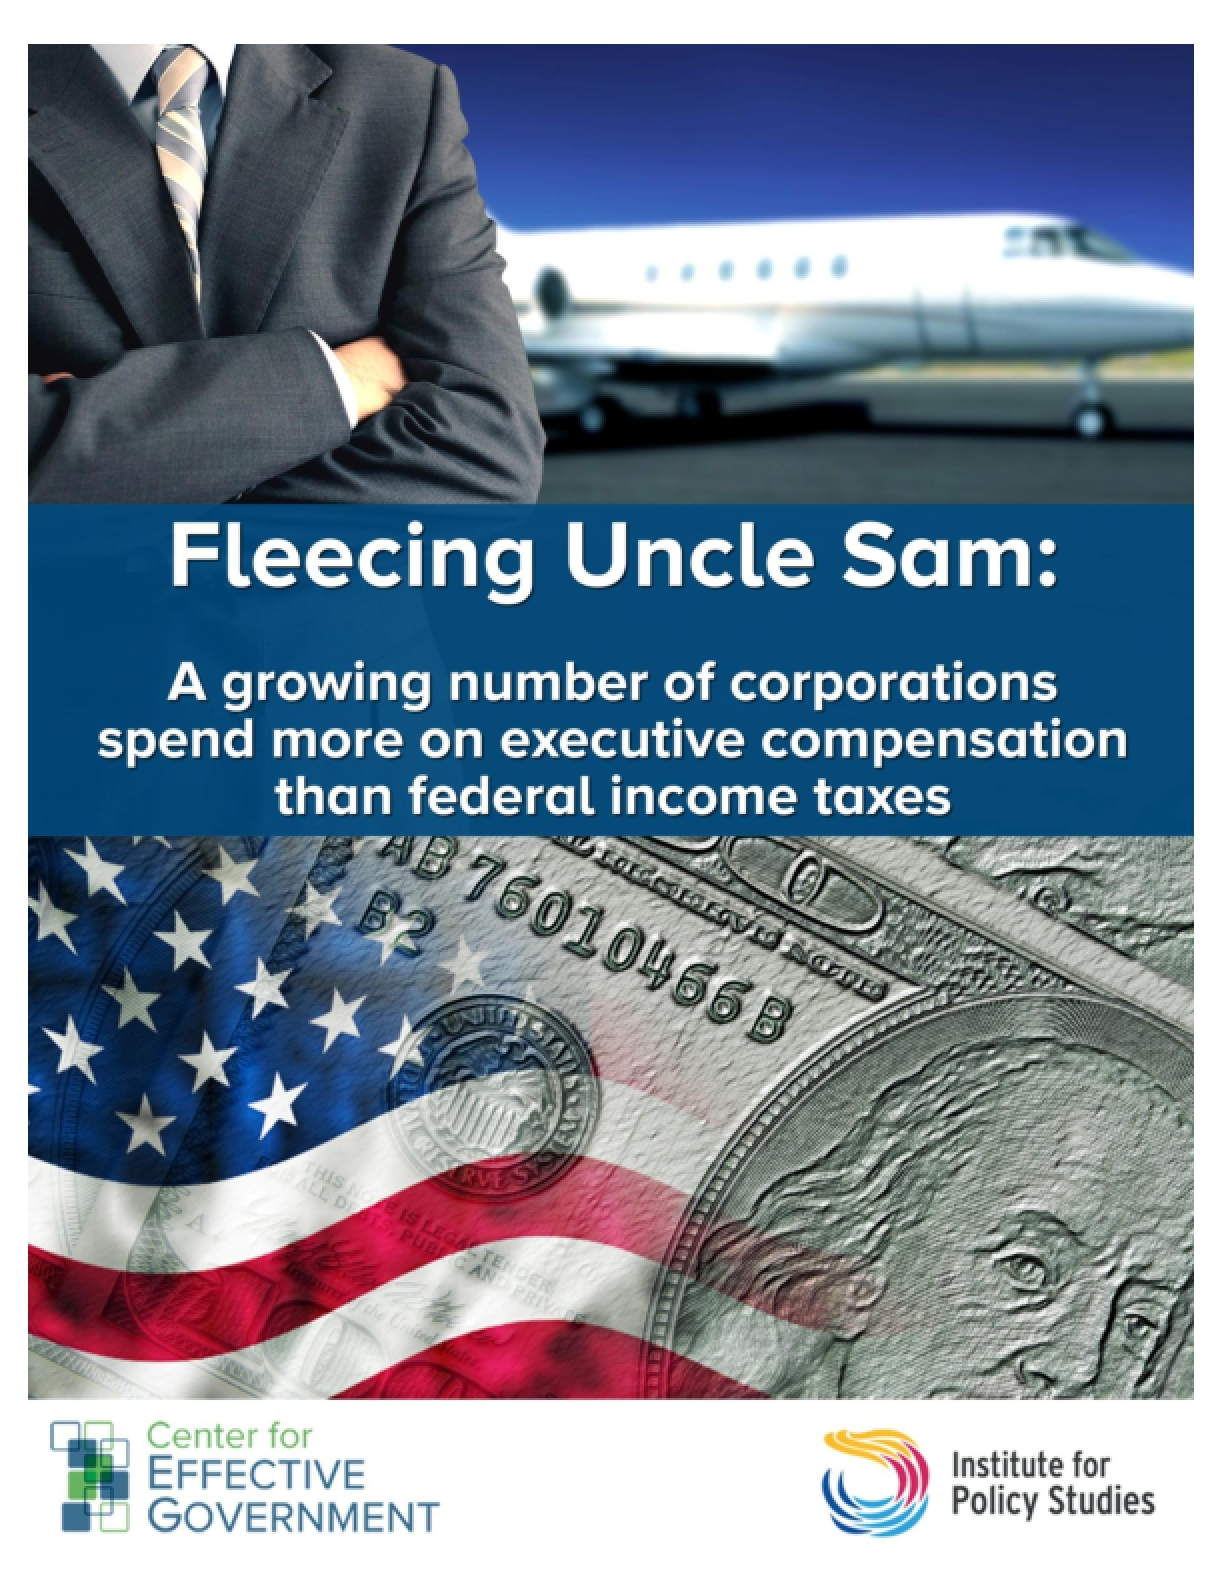 Fleecing Uncle Sam: A Growing Number of Corporations Spend More on Executive Compensation than Federal Income Taxes